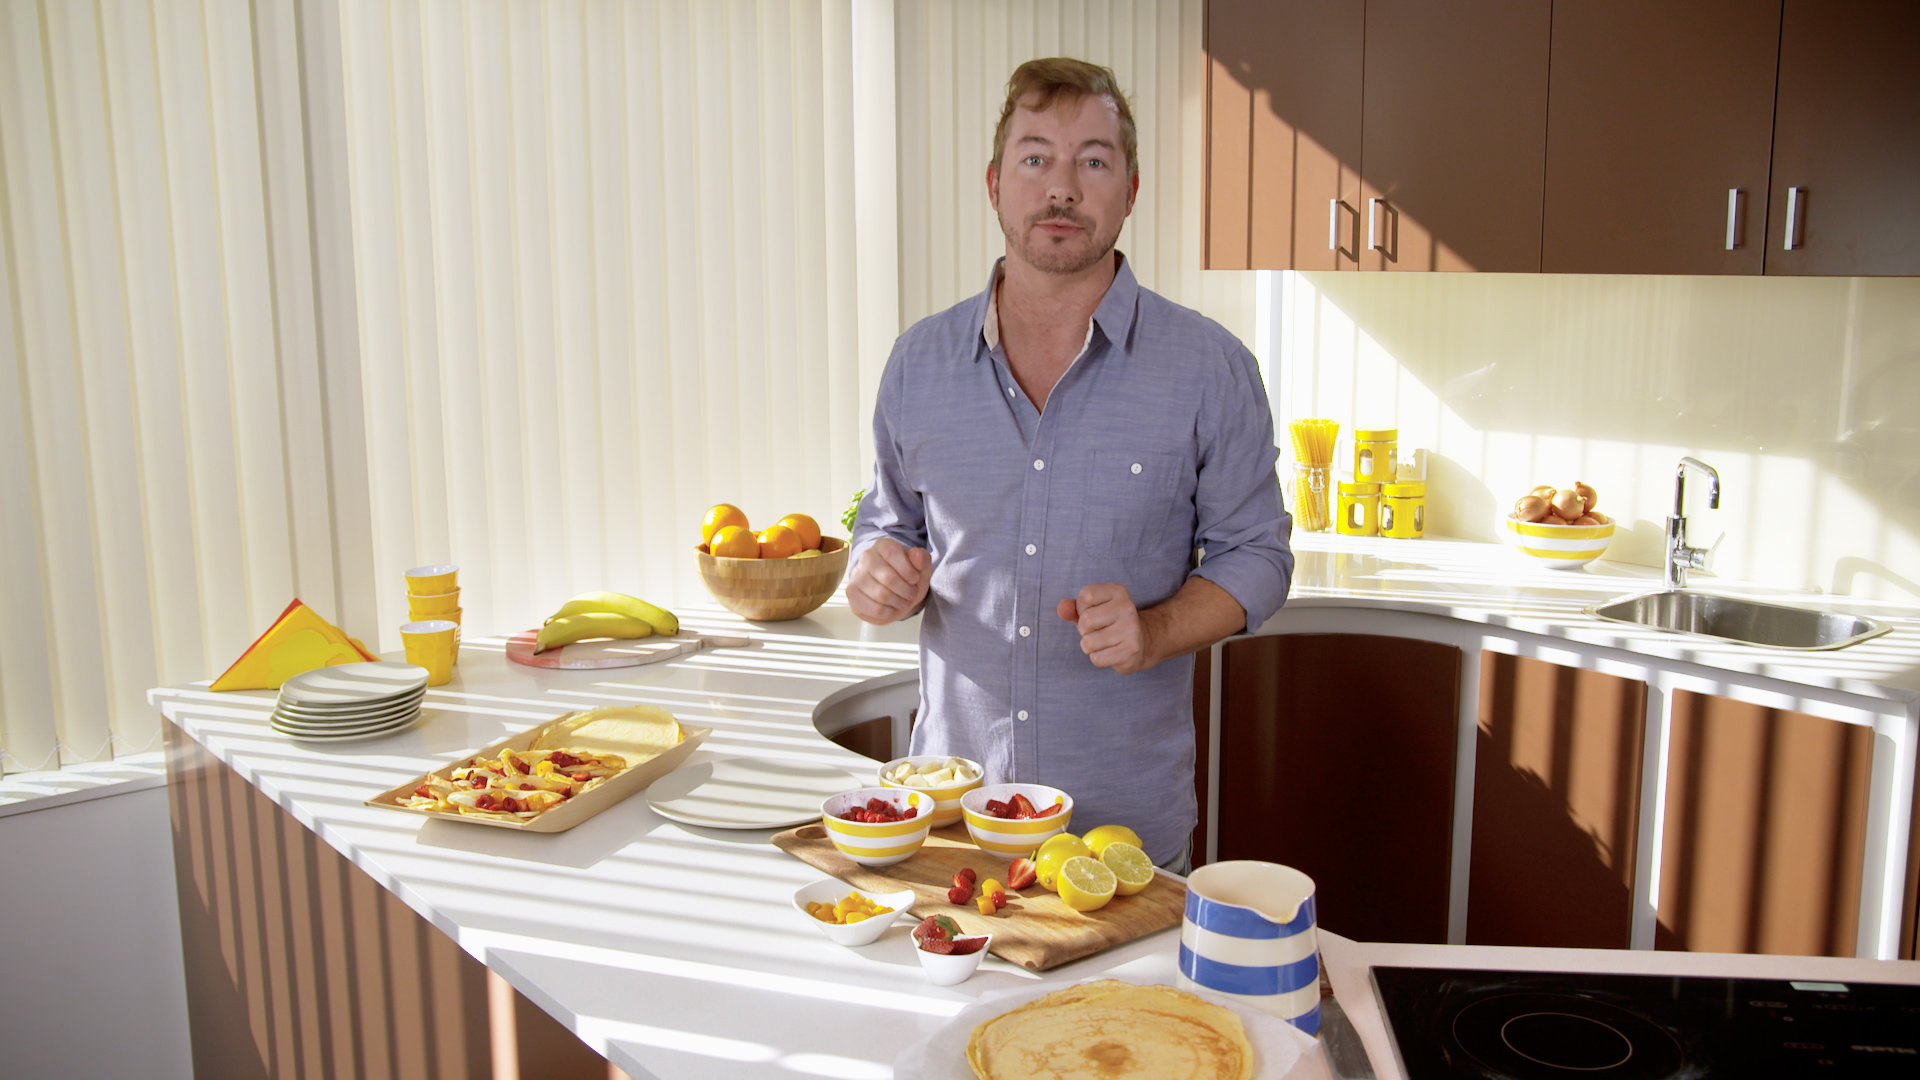 Maggi Unveils Branded Content To Support Everyday Cooks Via The White Agency